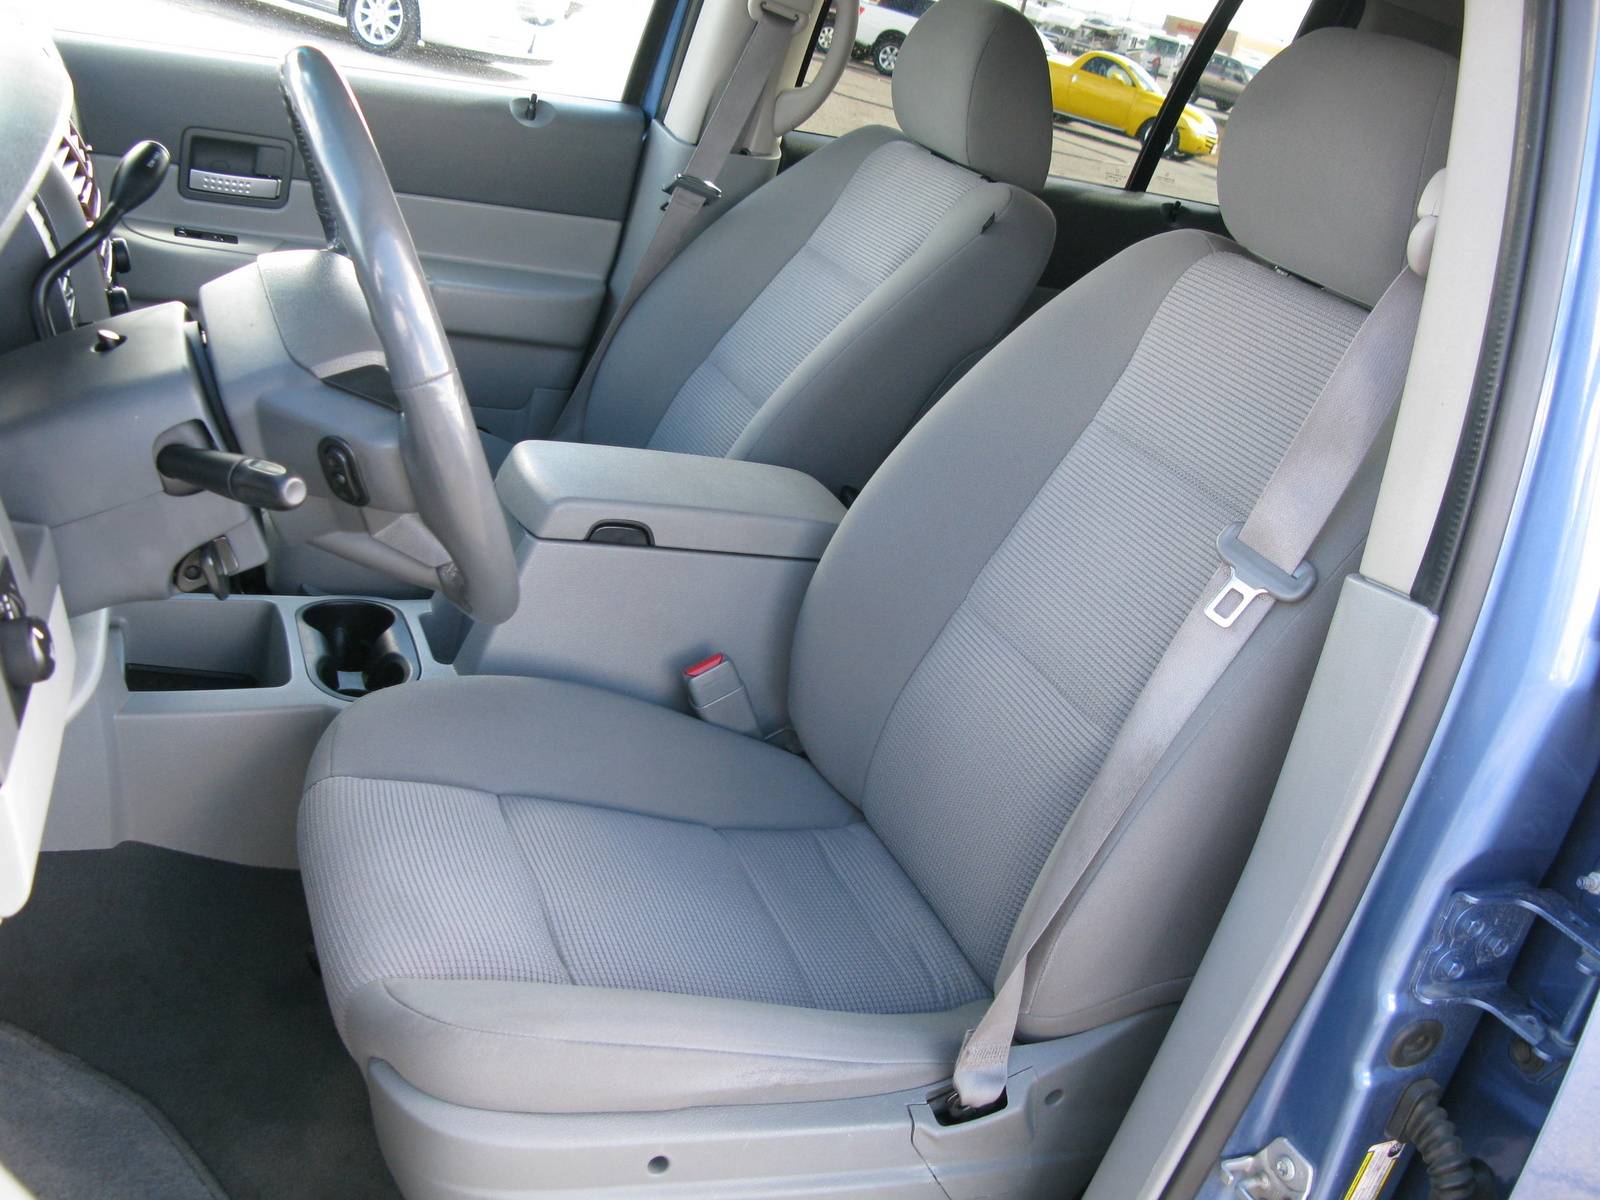 2007 dodge durango interior pictures cargurus. Black Bedroom Furniture Sets. Home Design Ideas